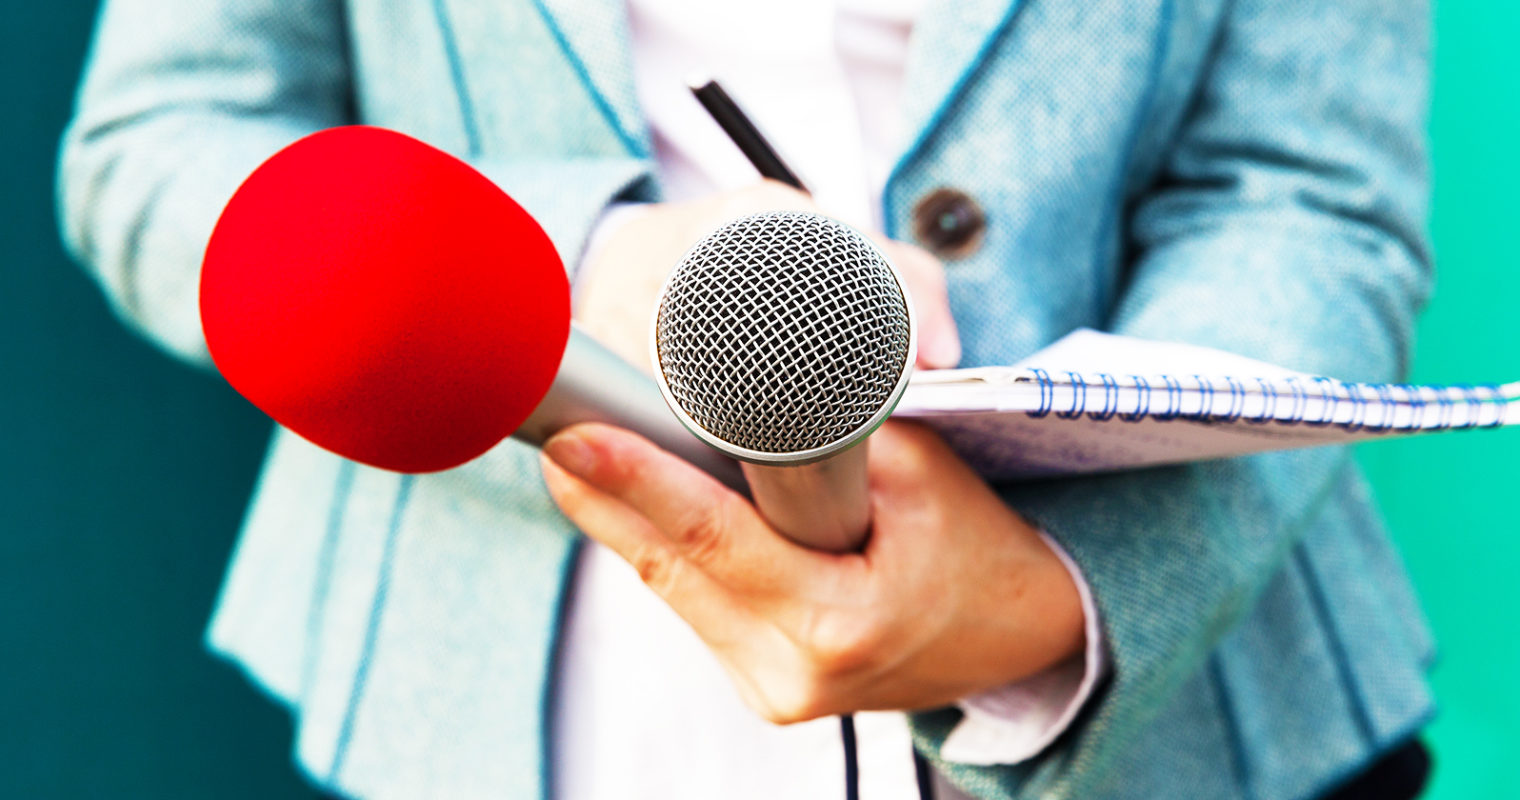 More Than Just SEO: Running Content Departments Like Newsrooms